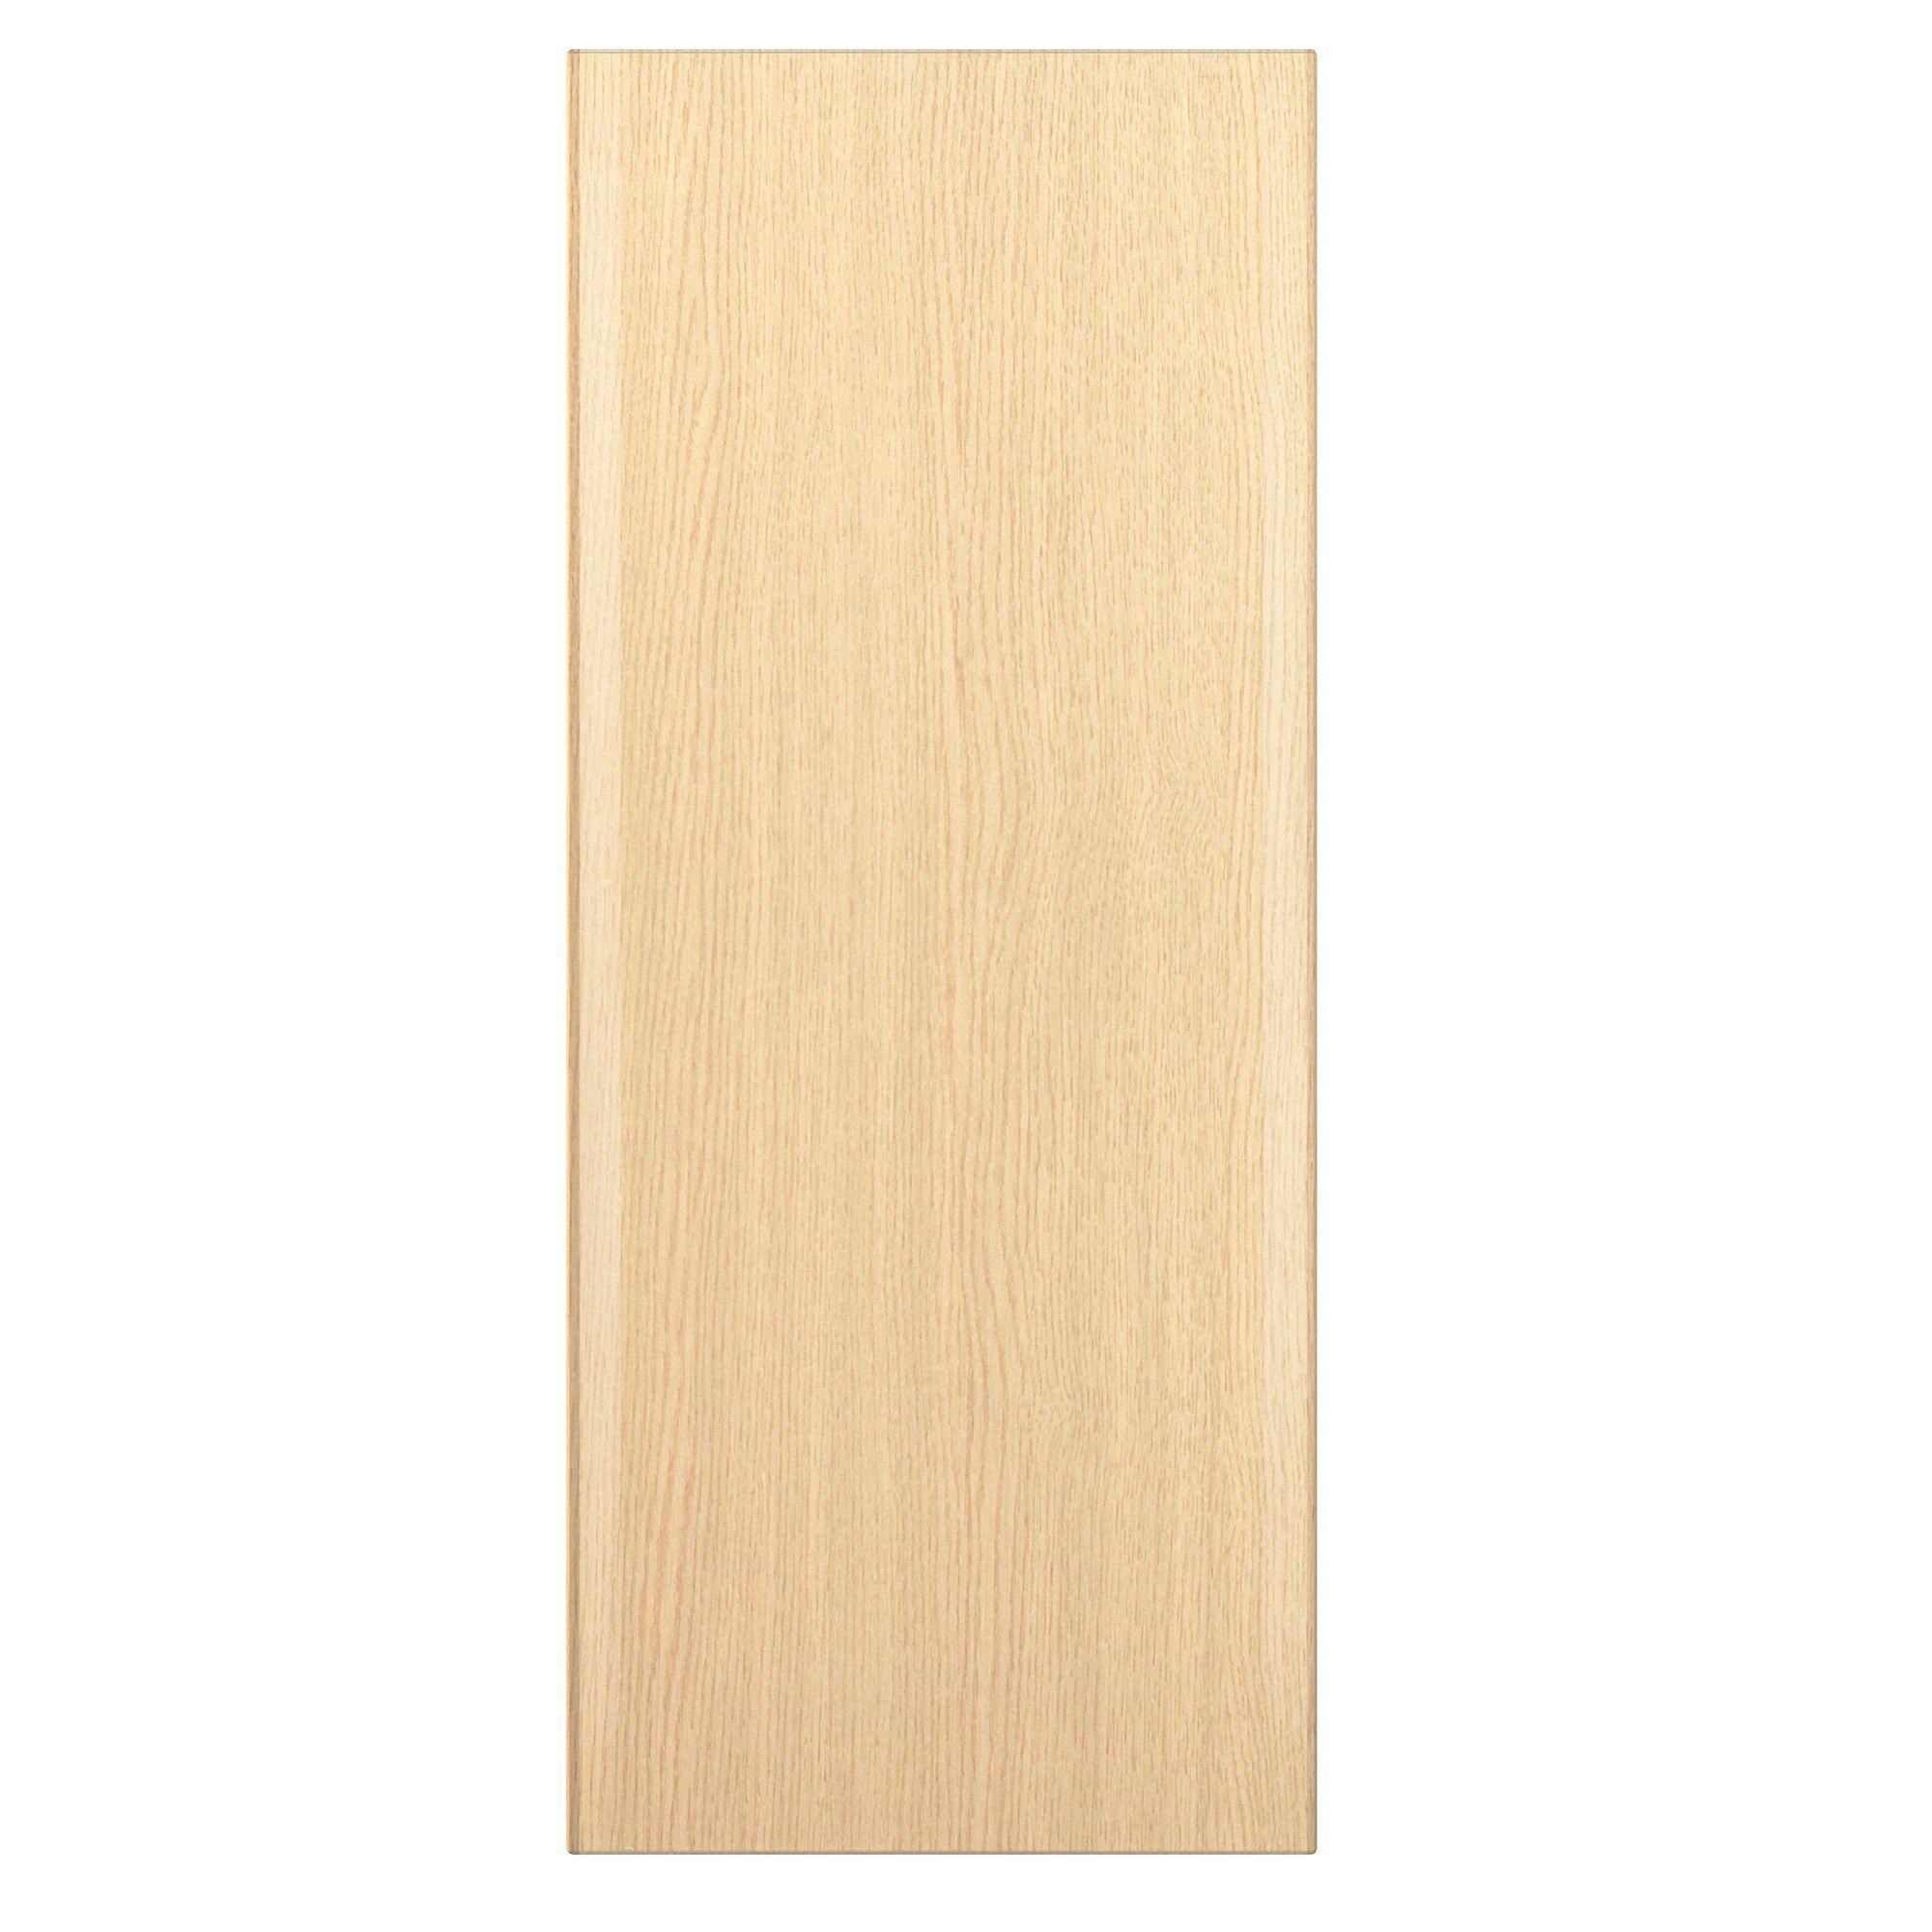 It Kitchens Oak Effect Wall End Replacement Panel 290 Mm